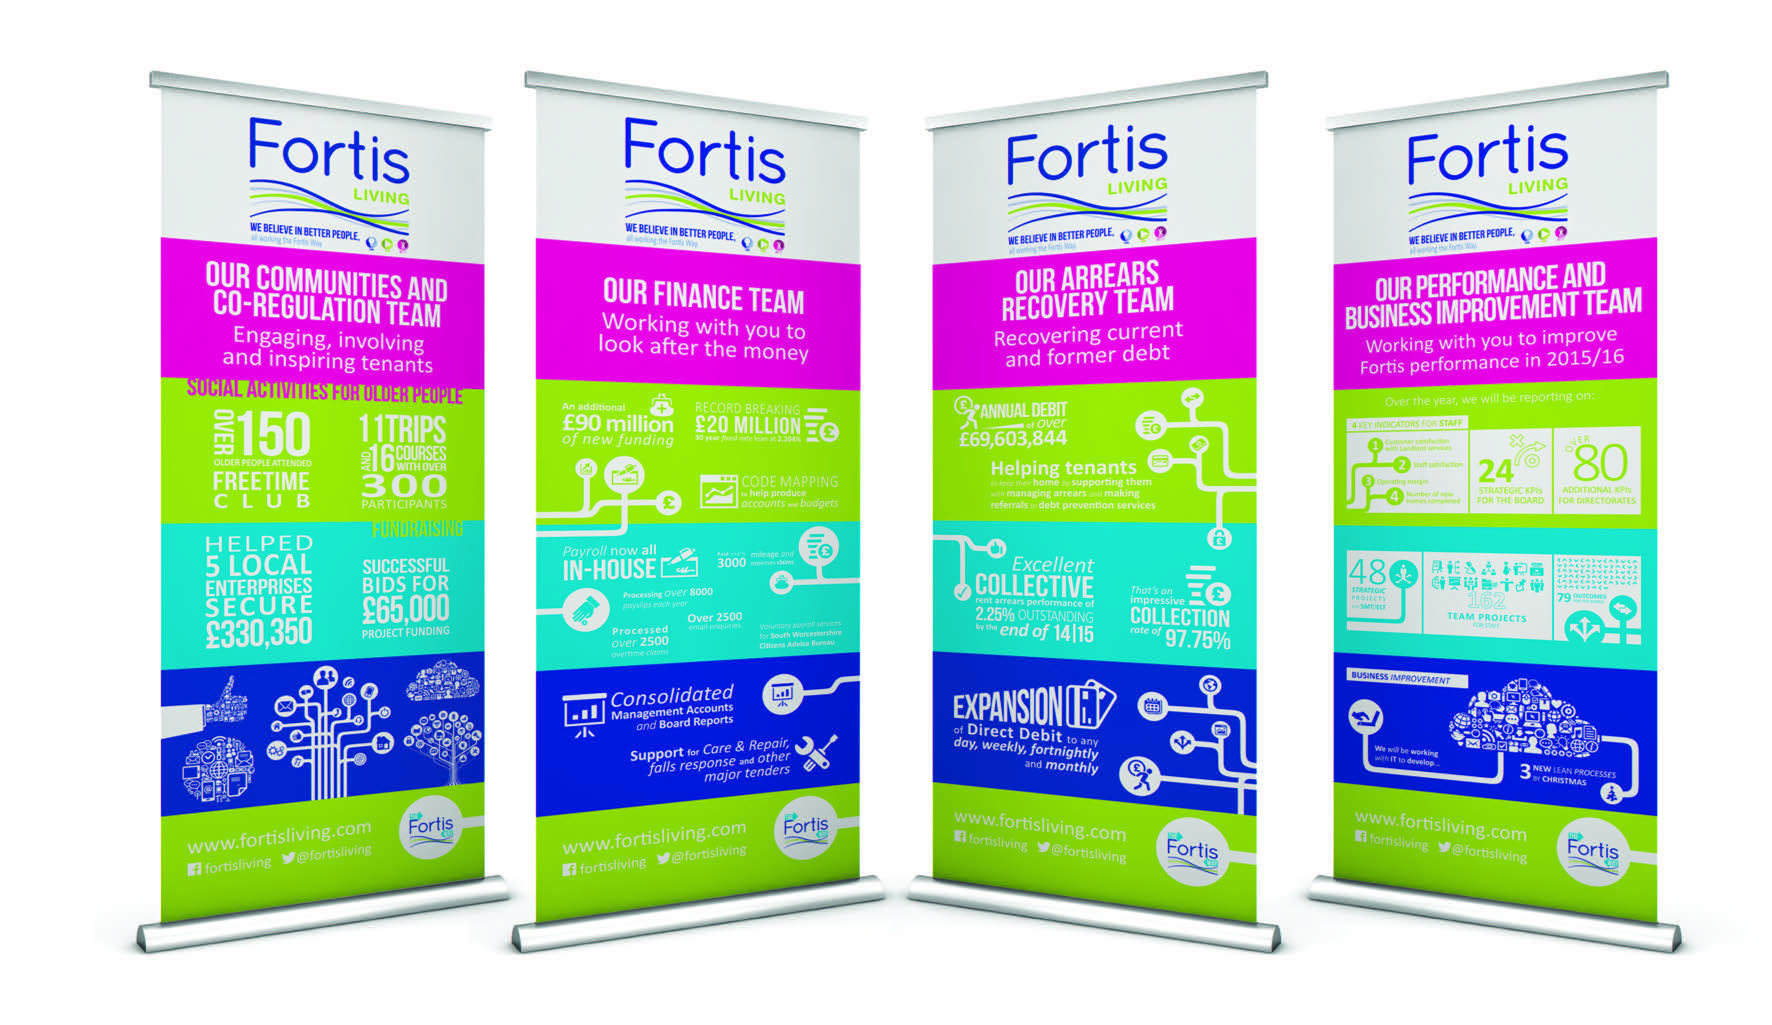 Fortis banners